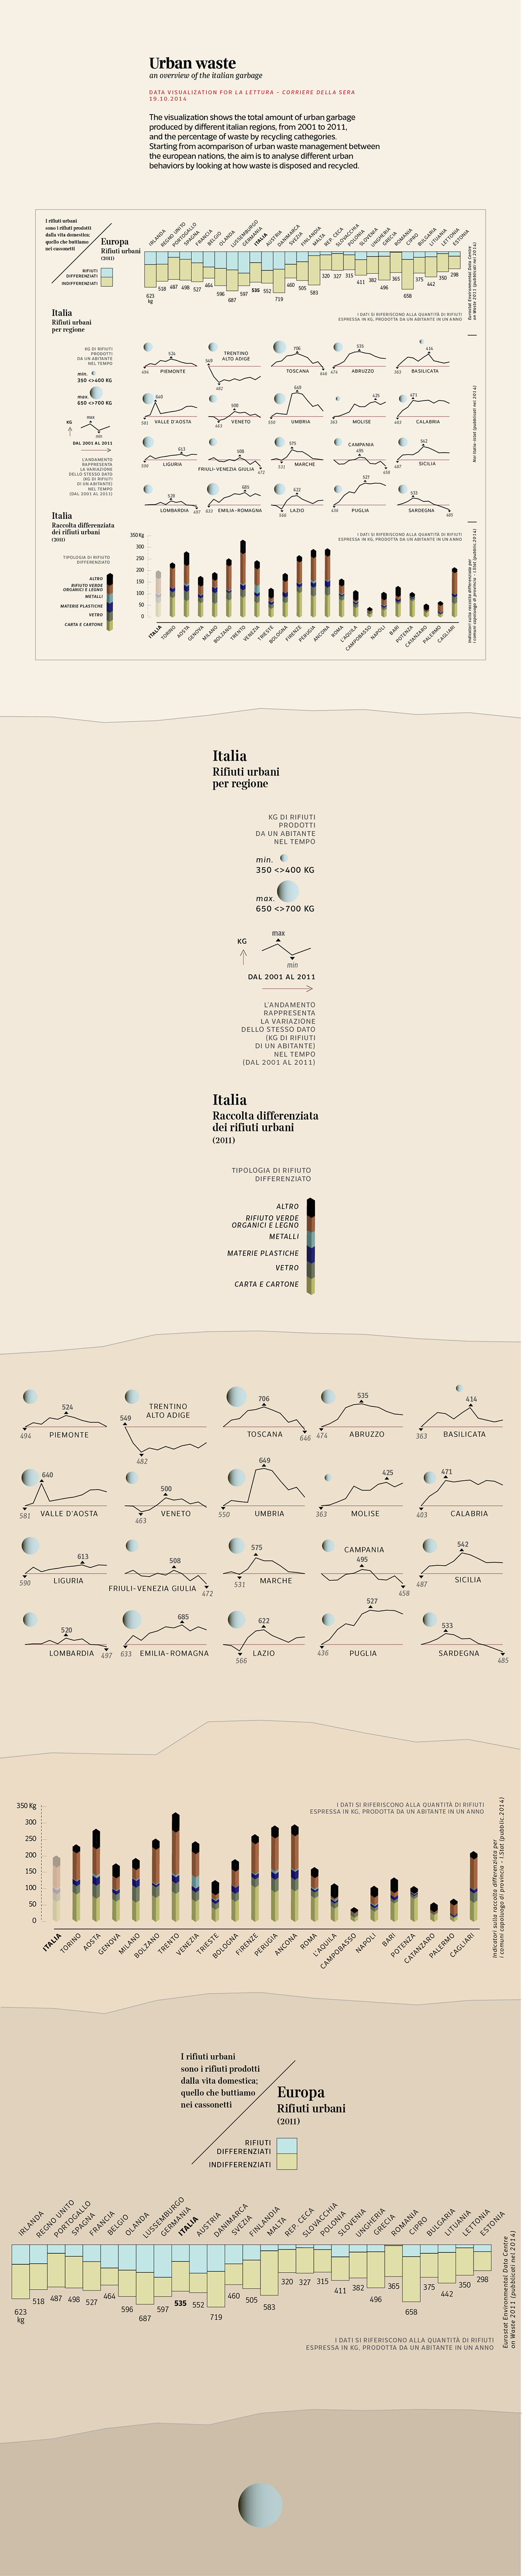 waste garbage recycling data visualization infographic